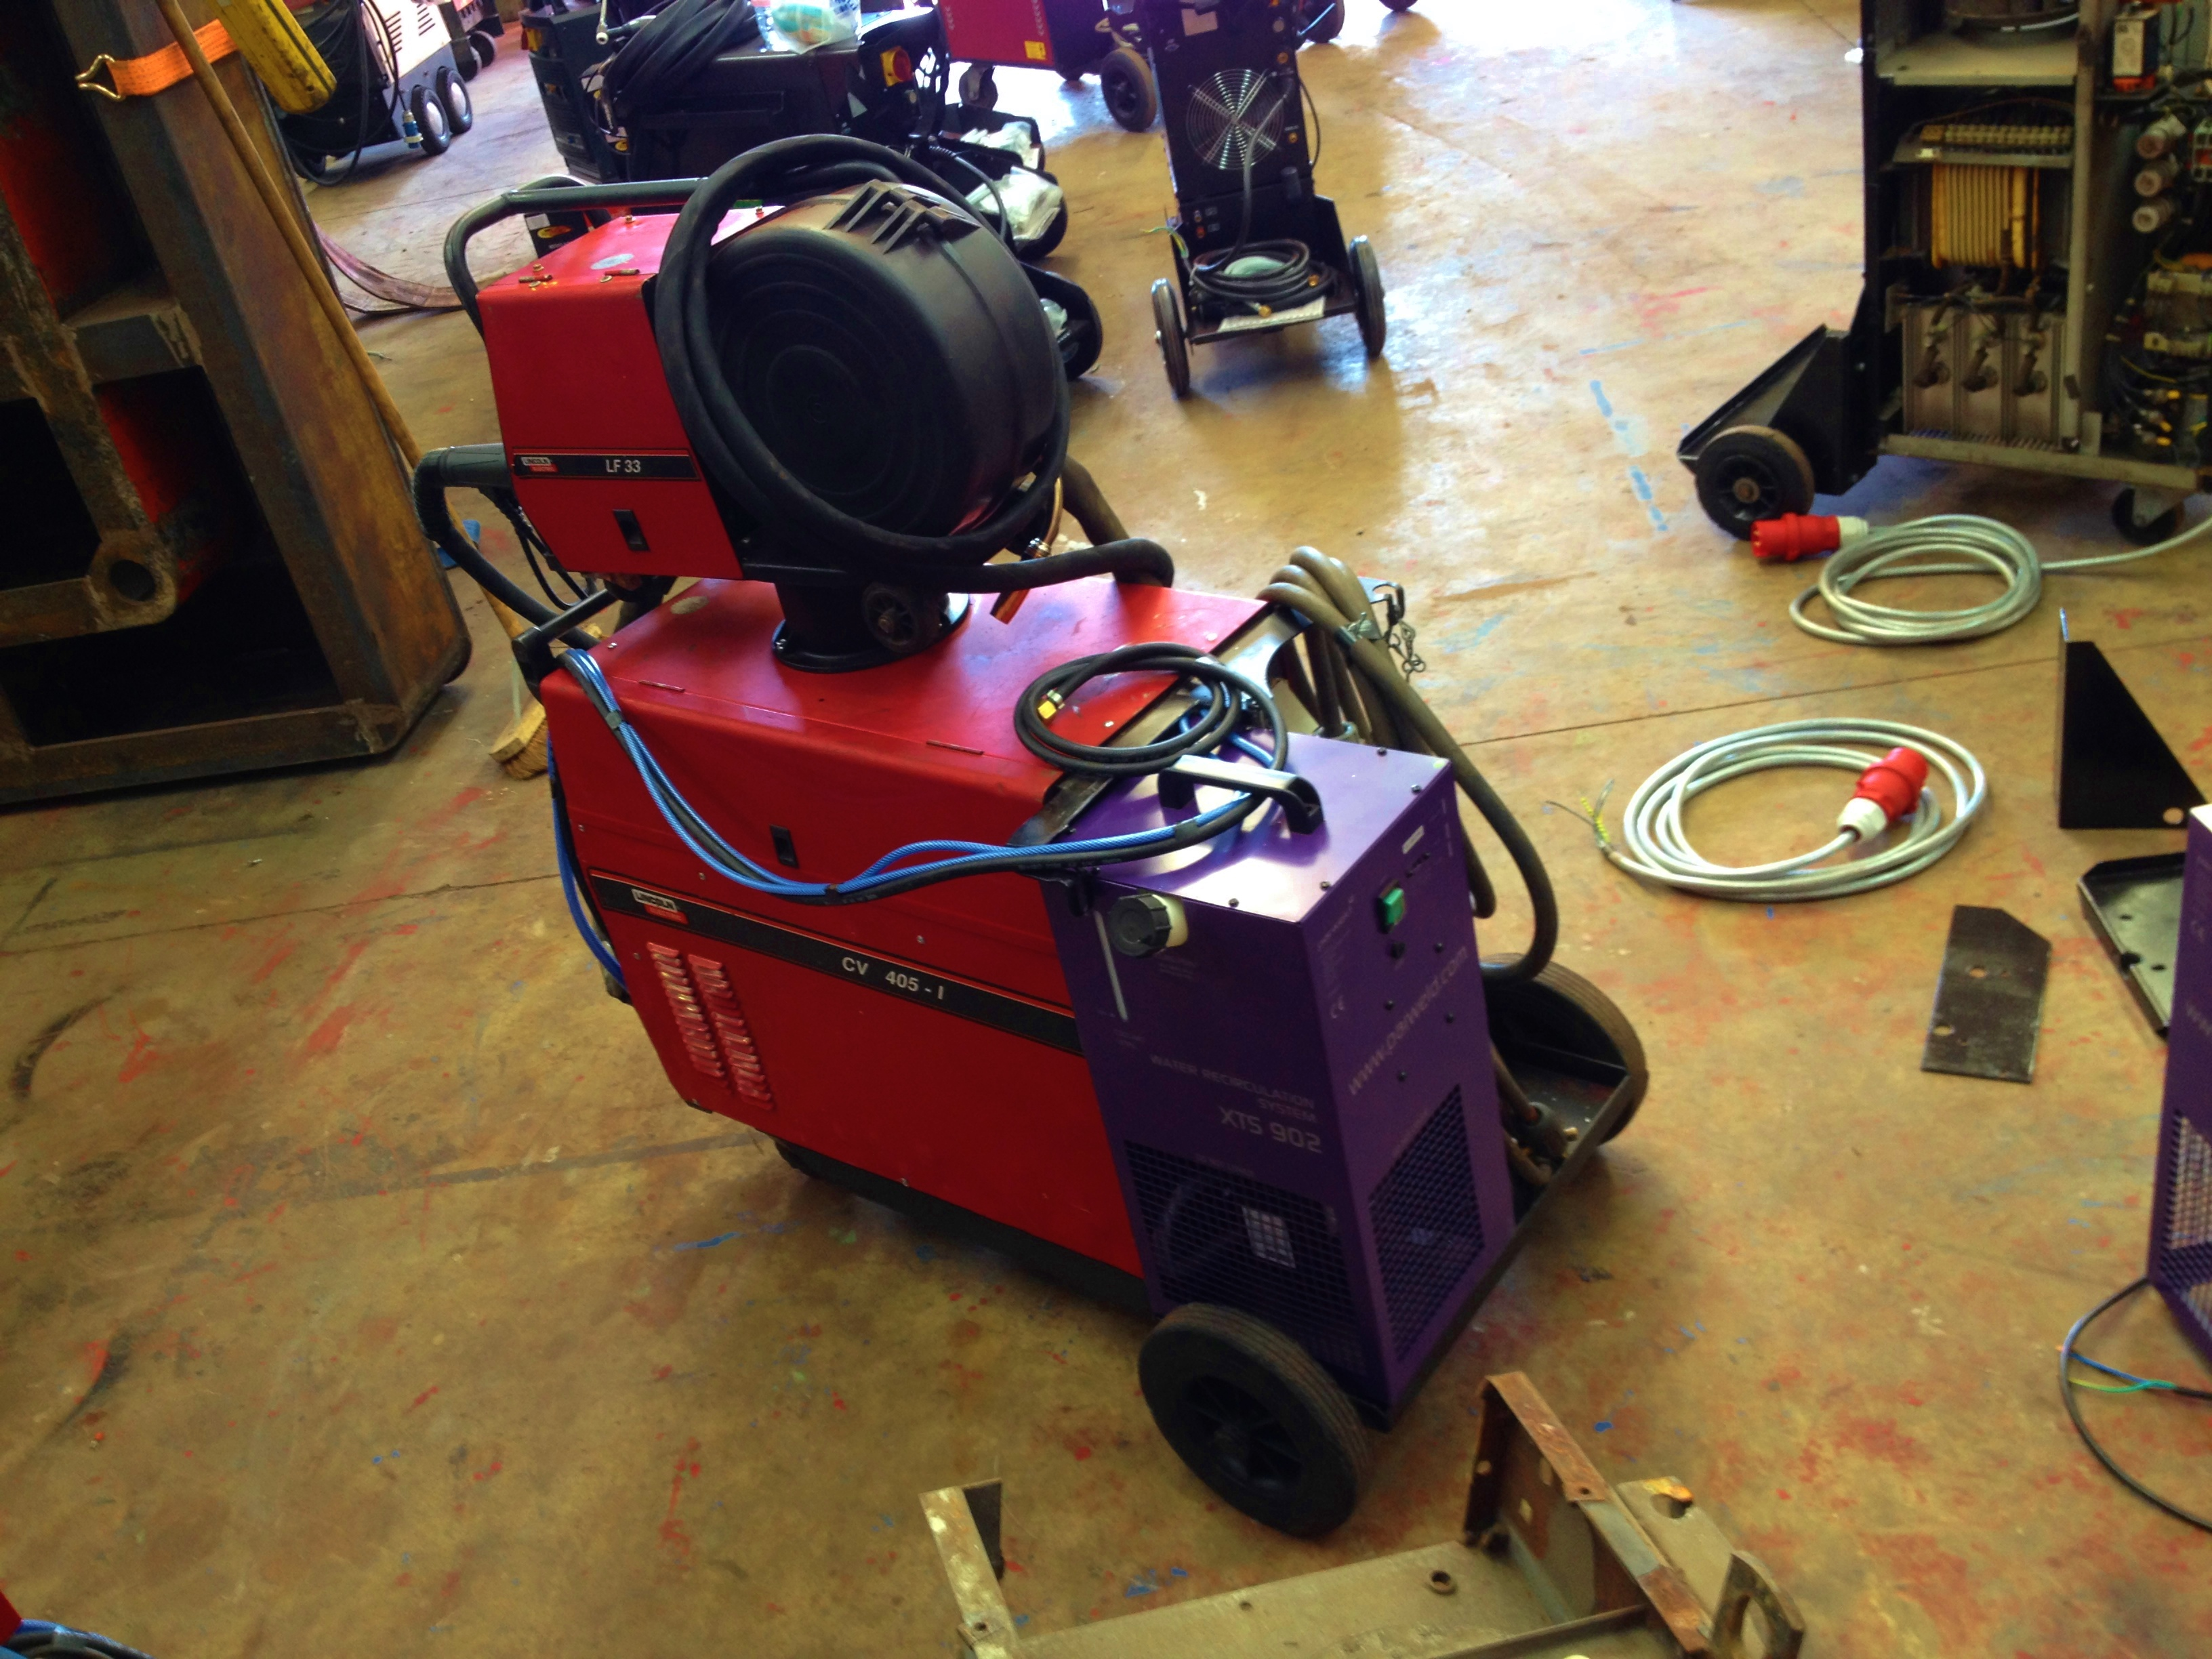 Lincoln Electric CV 405 I Water Cooled MIG Welding Machine With LF